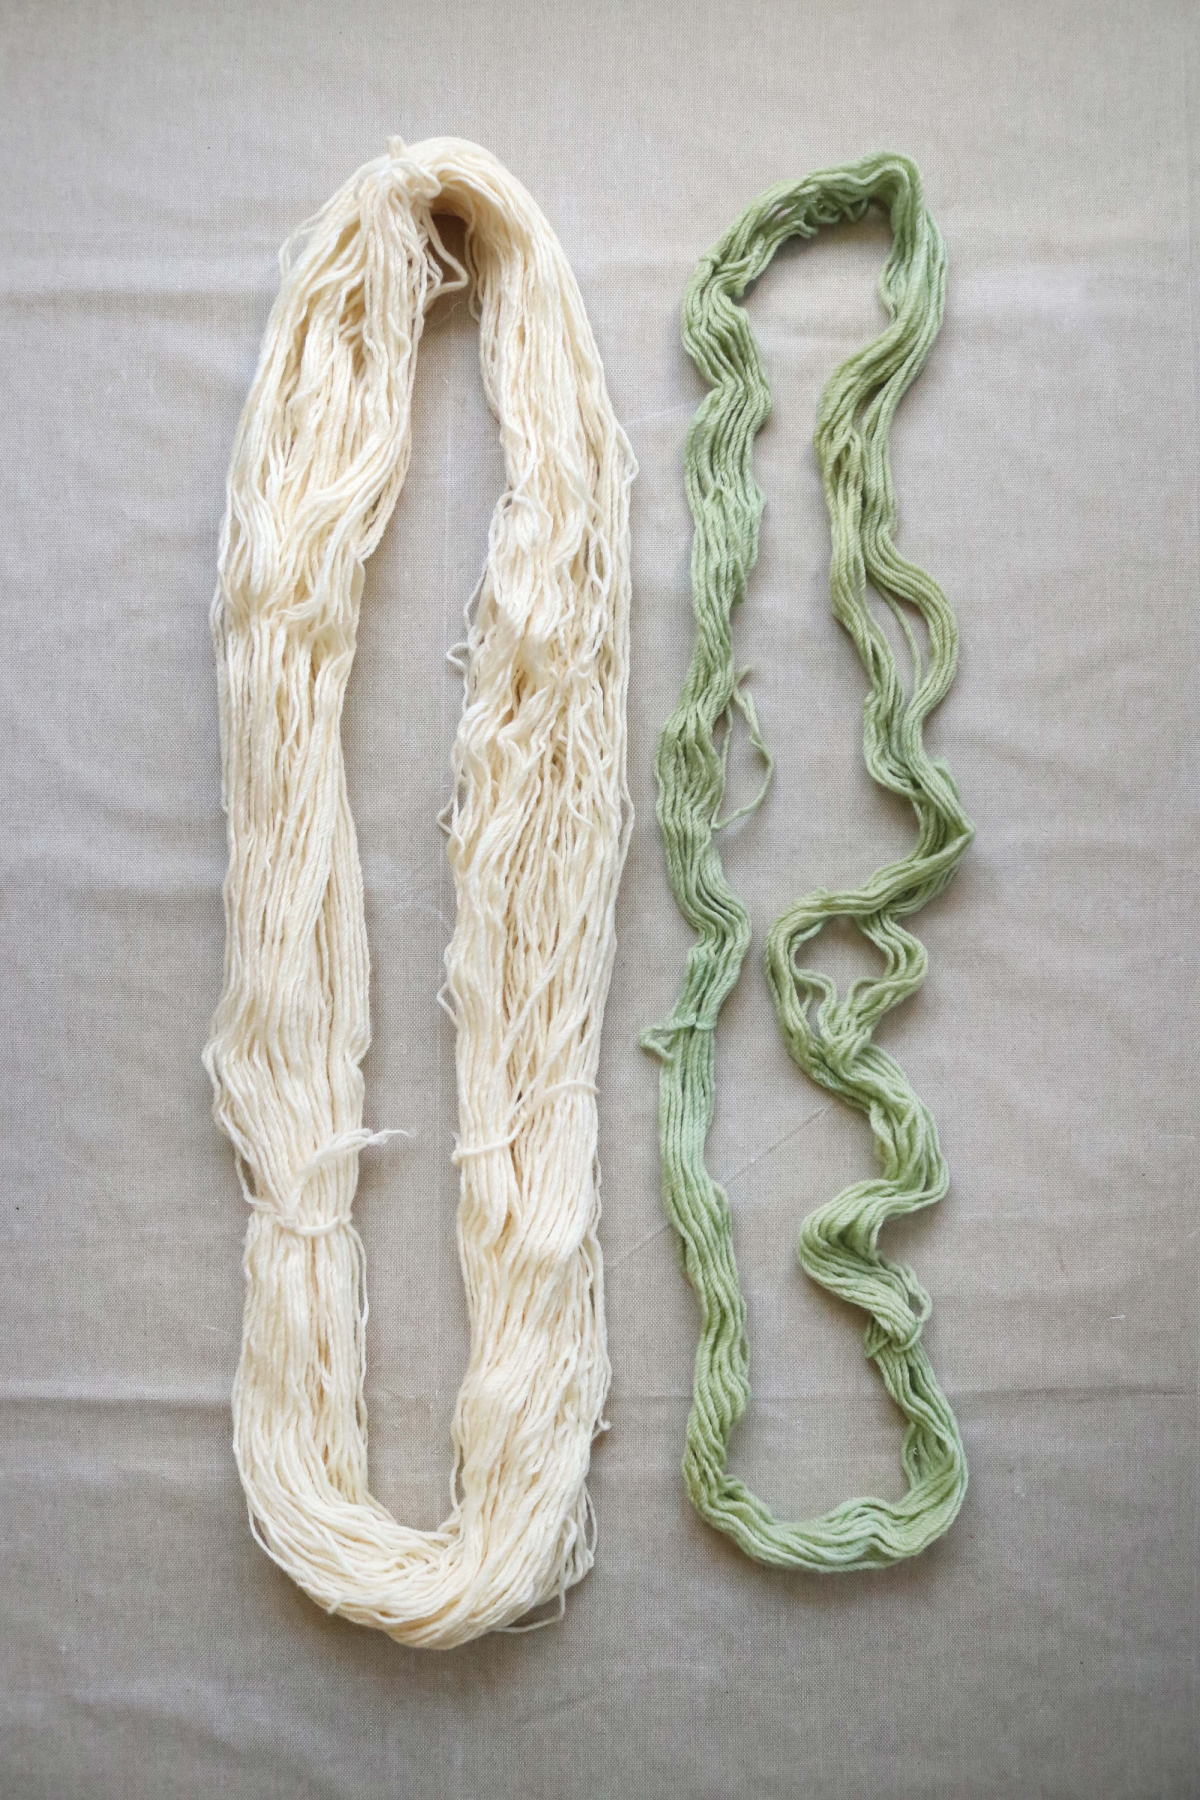 skeins mordanted with different materials